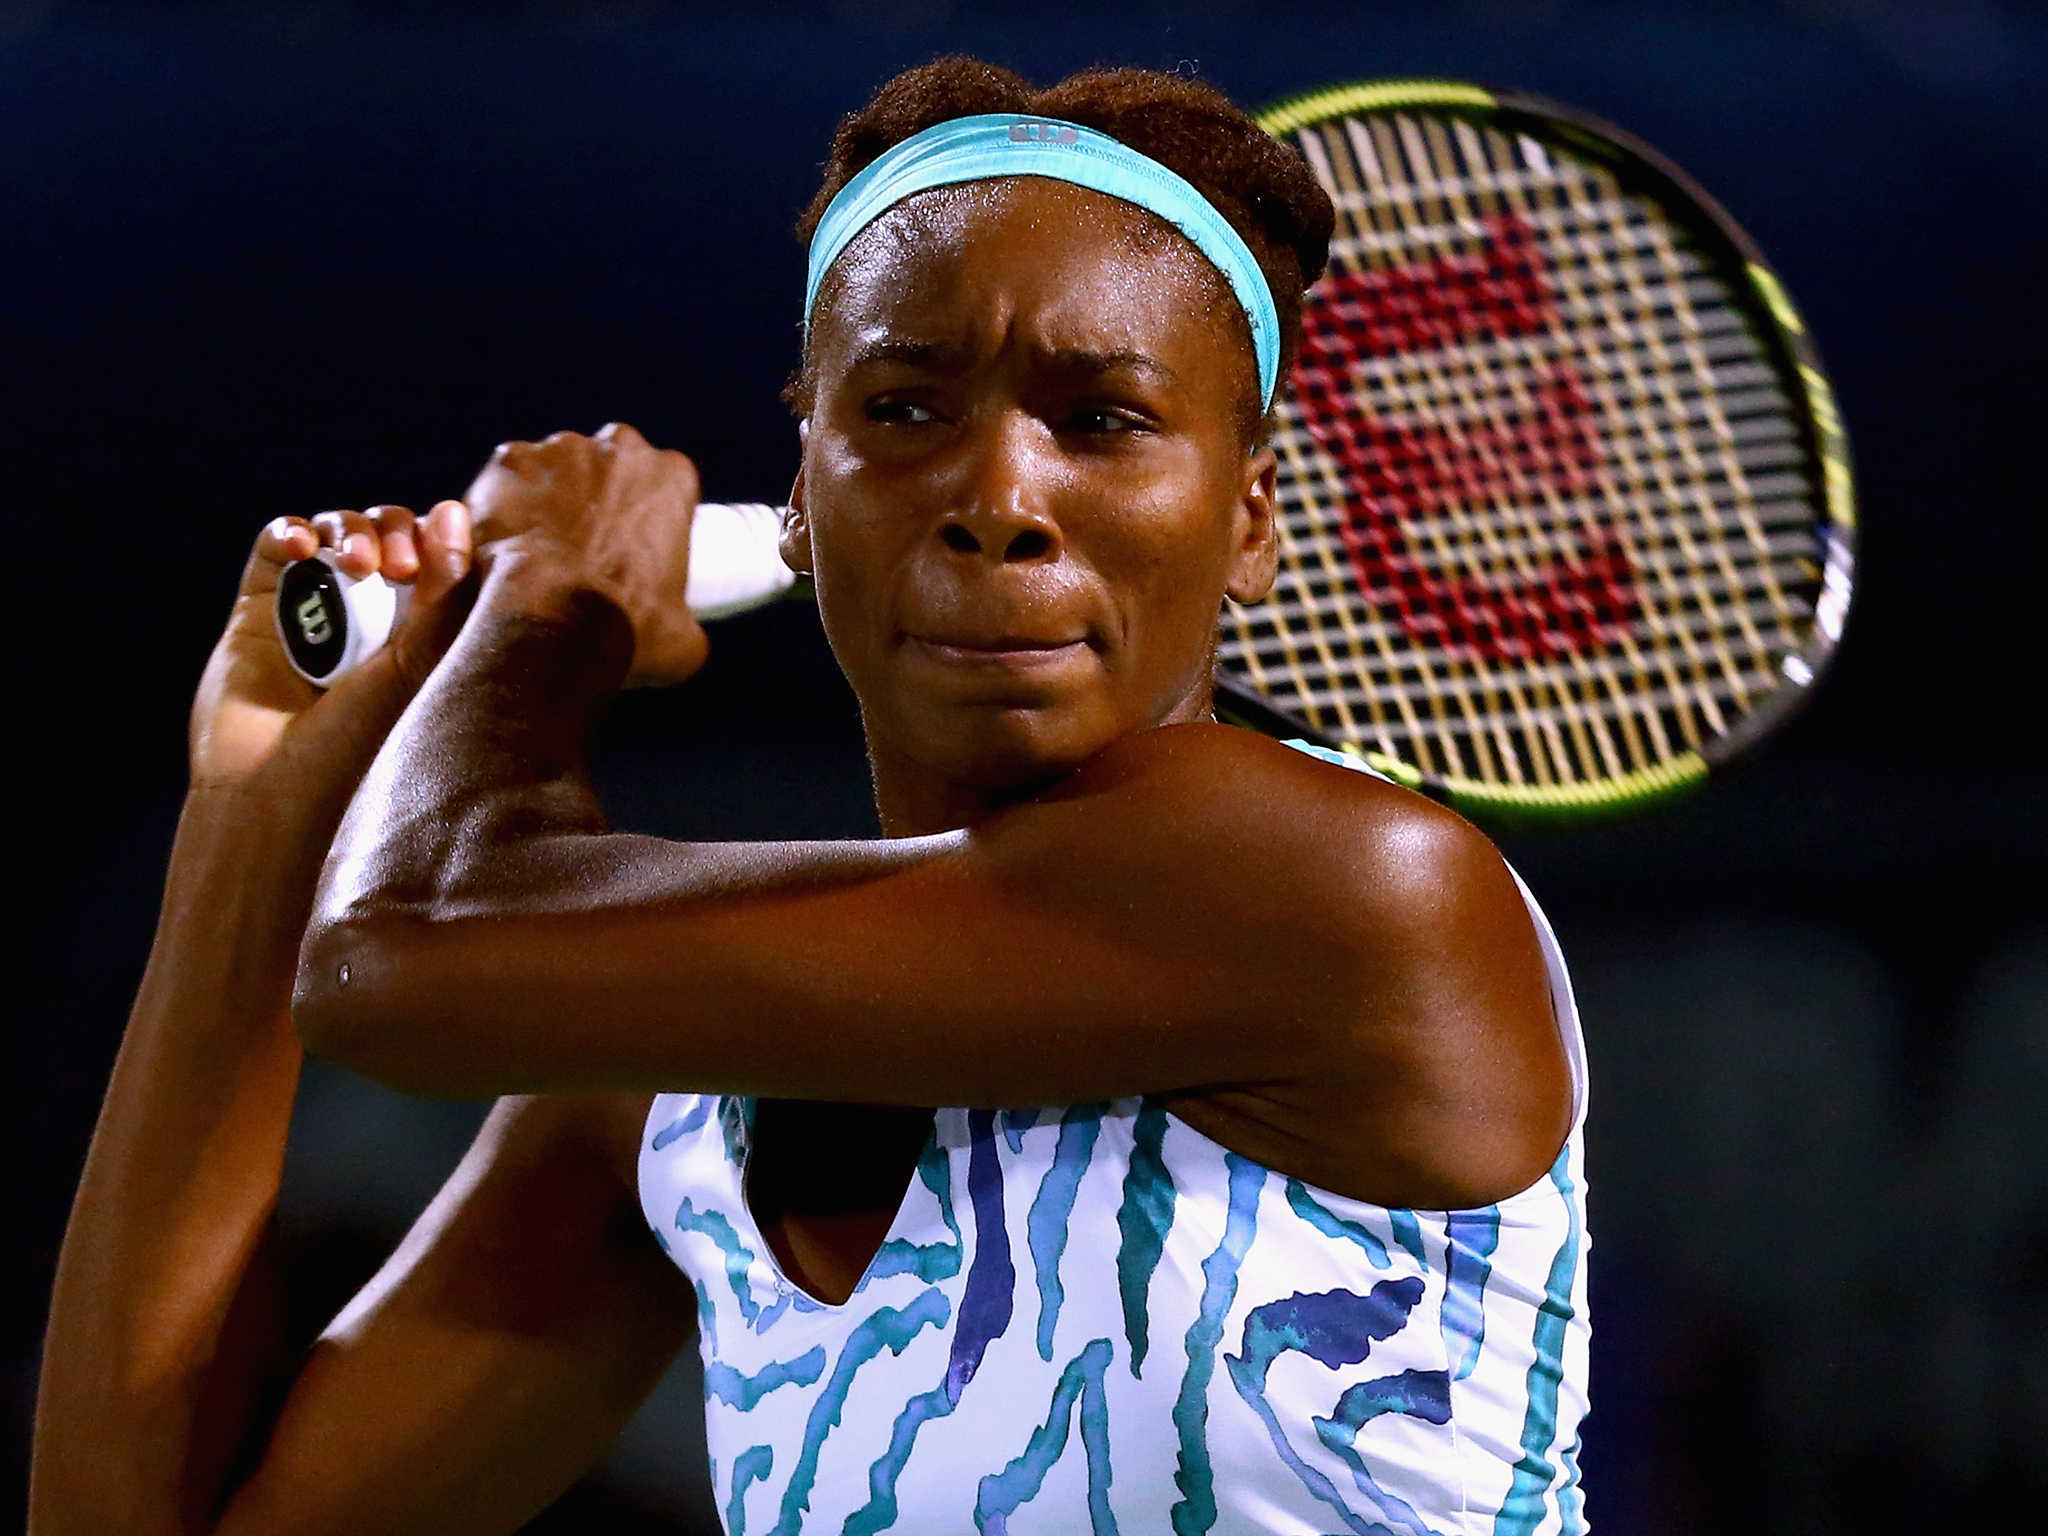 venus williams wallpaper pictures 59952